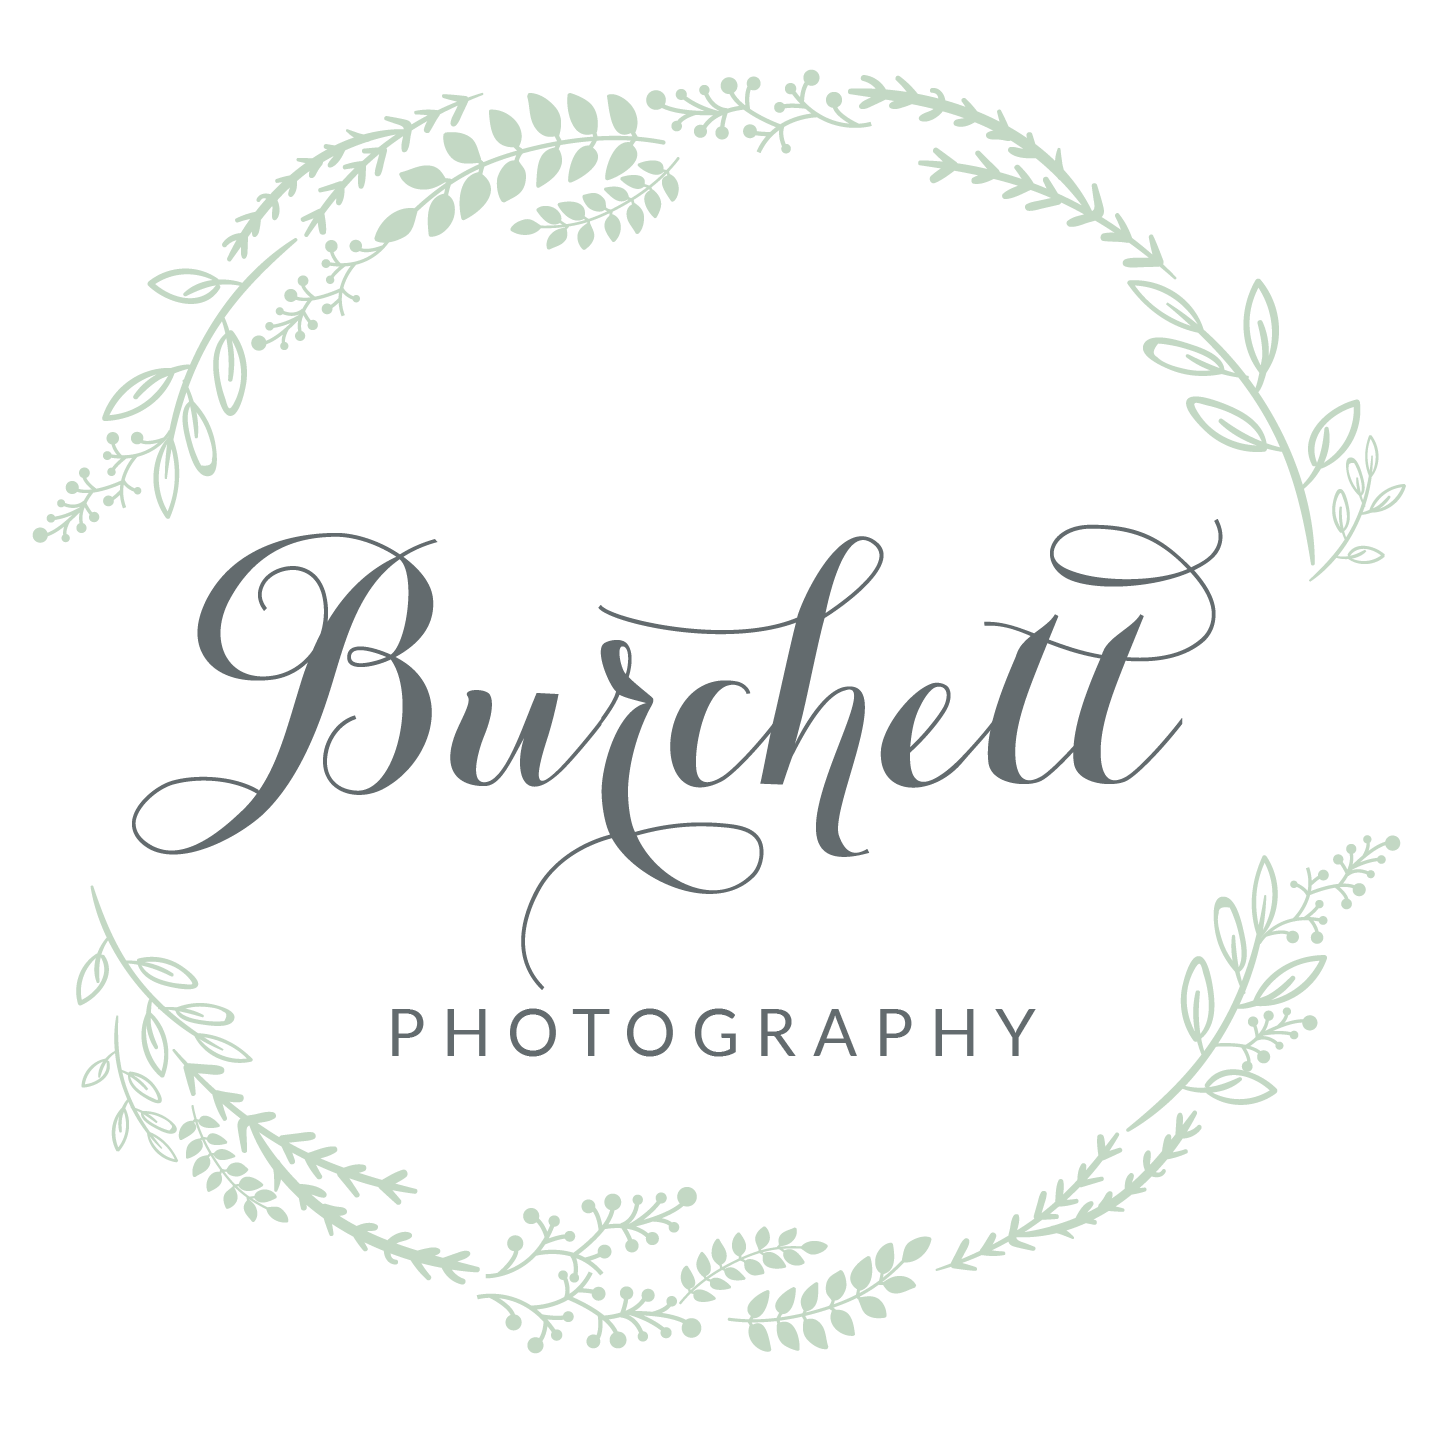 Burchett Photography